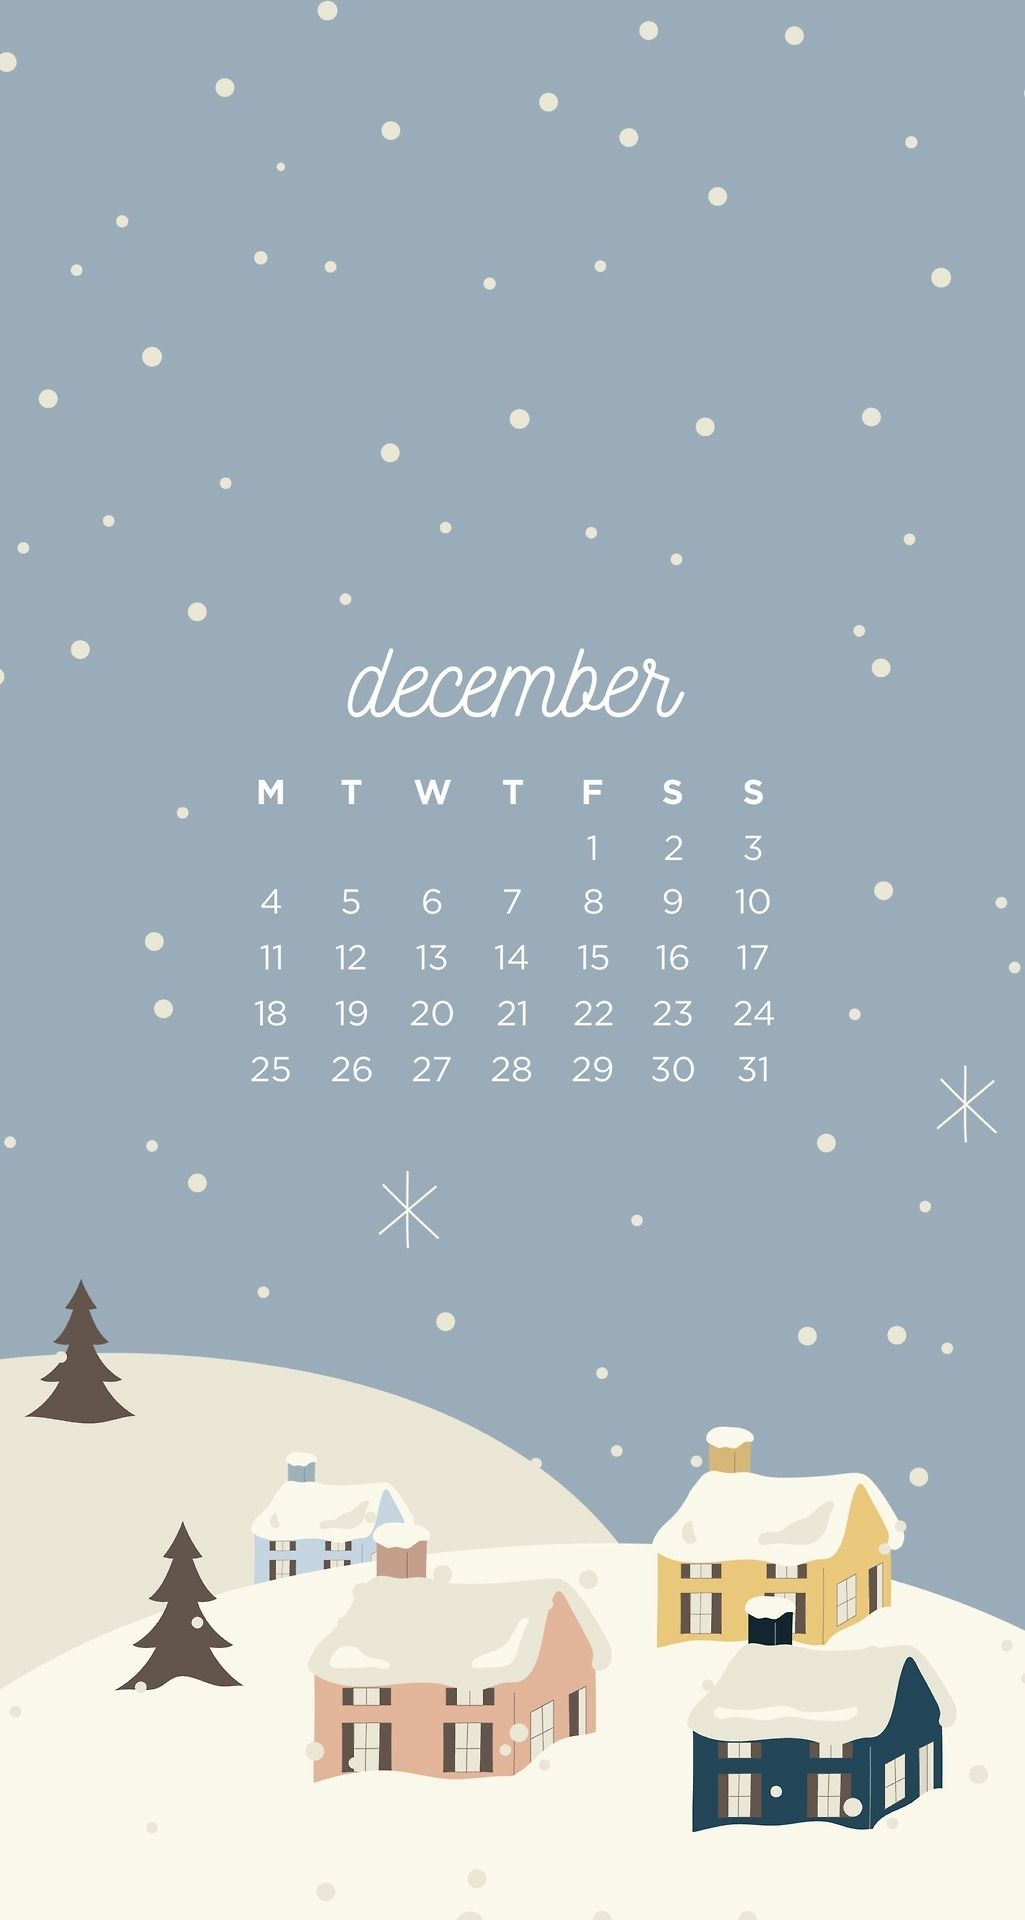 emma's studyblr — December Christmas Town Phone Wallpapers Here are...